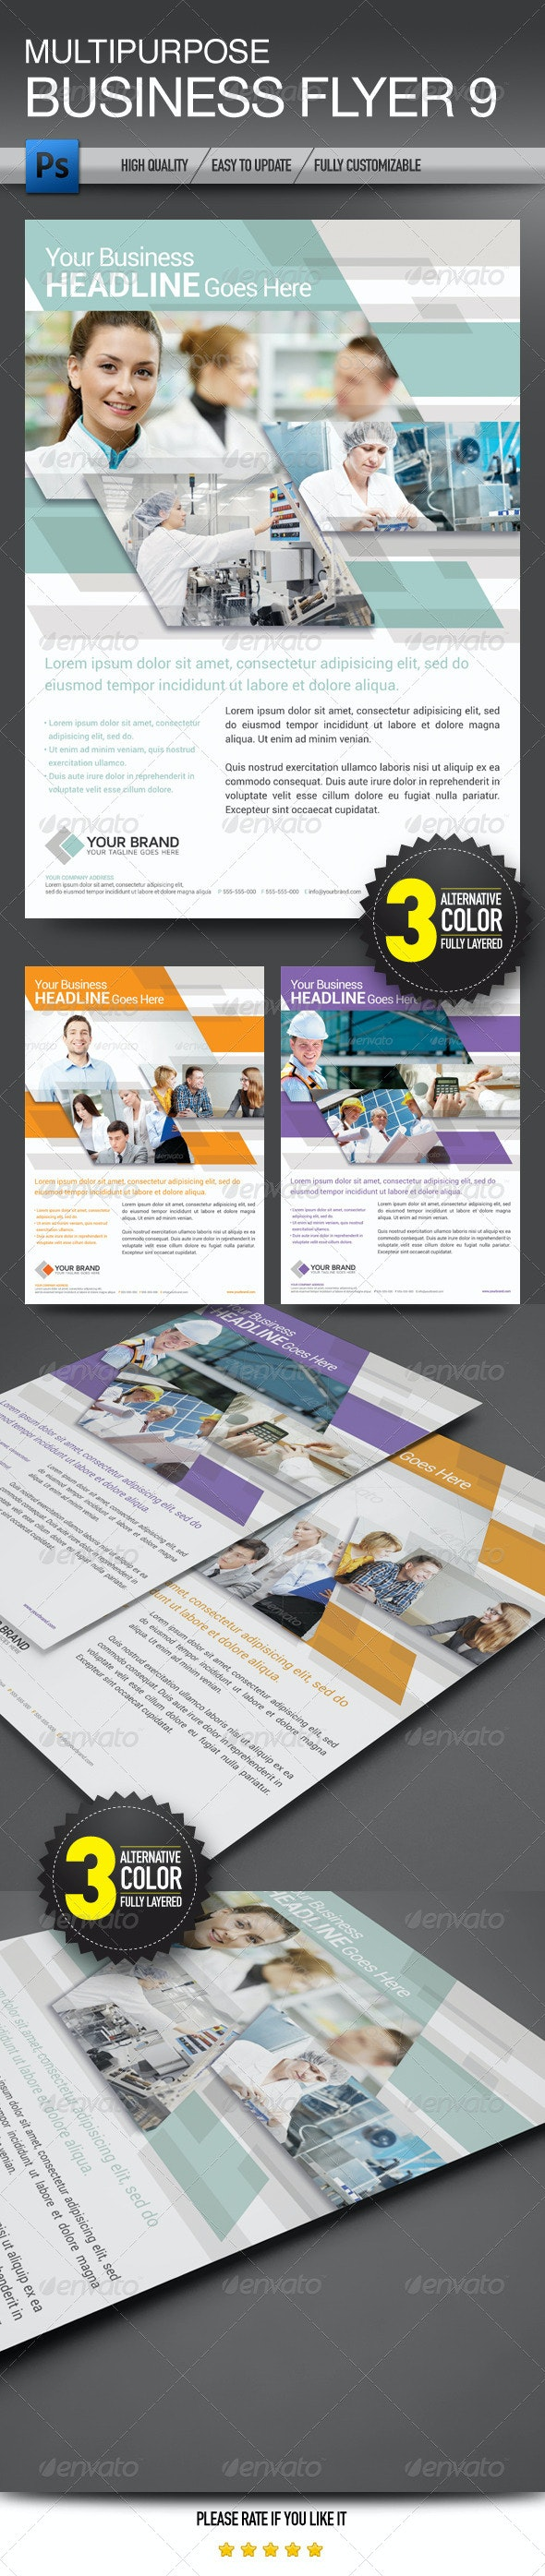 Multipurpose Business Flyer 9 - Corporate Flyers